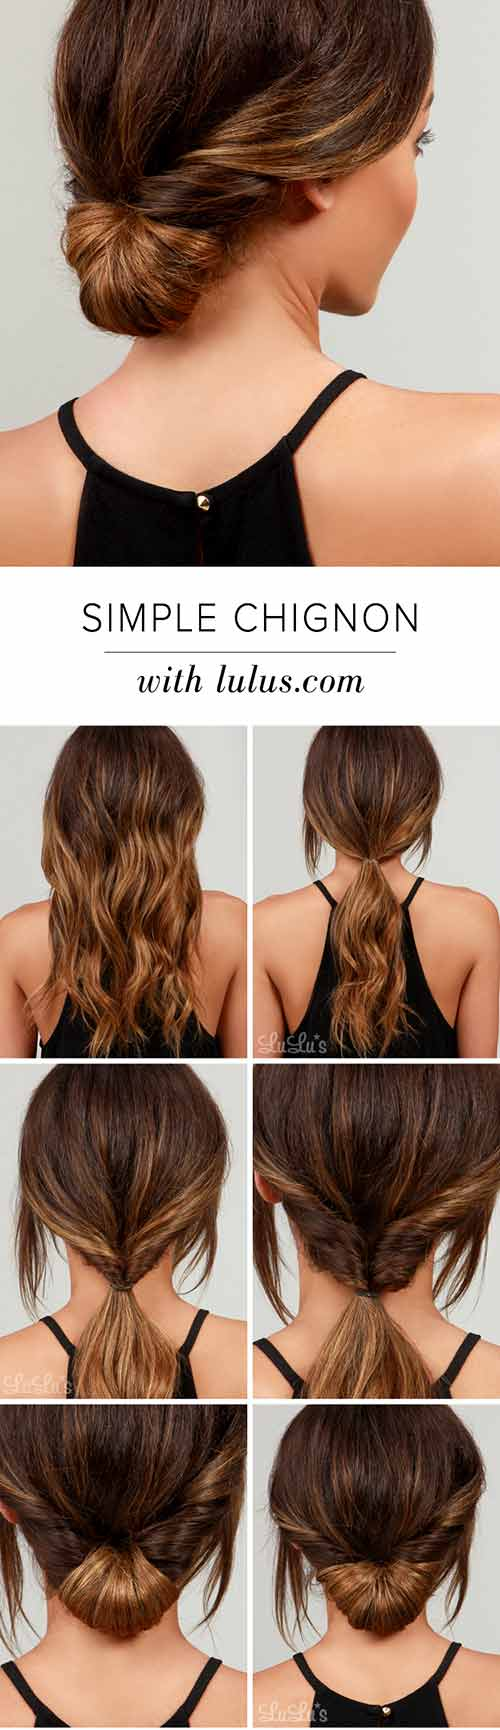 Simple-Chignon Awesome Hairstyles For Girls With Long Hair